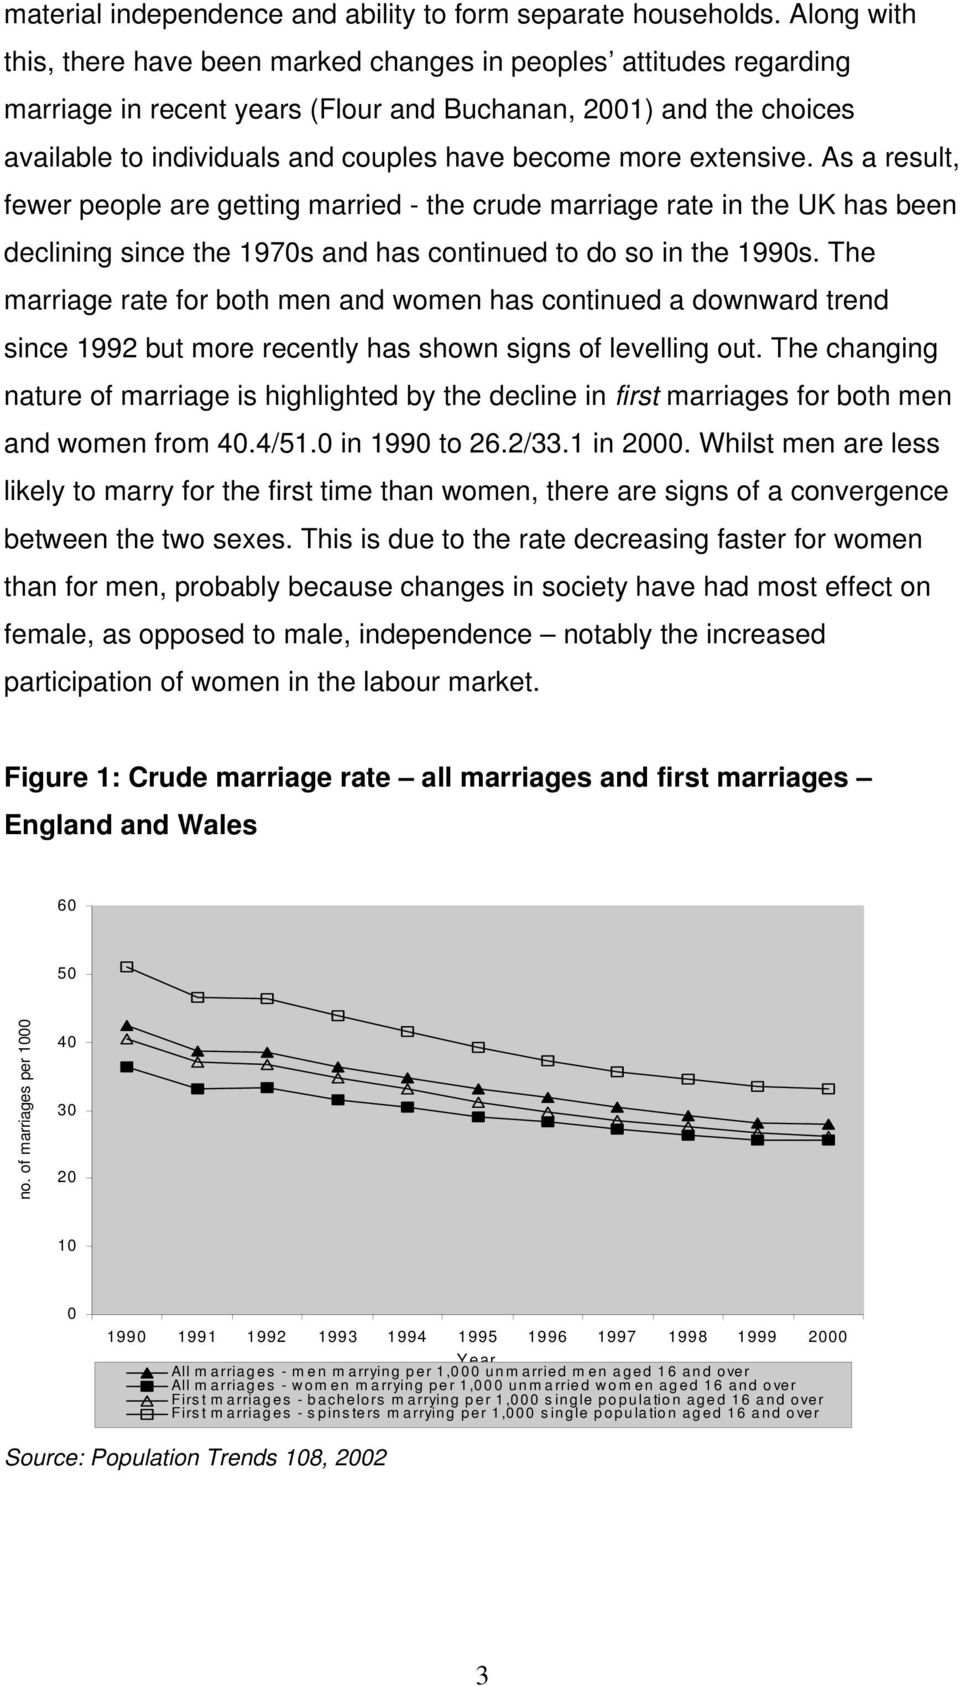 more extensive. As a result, fewer people are getting married - the crude marriage rate in the UK has been declining since the 1970s and has continued to do so in the 1990s.